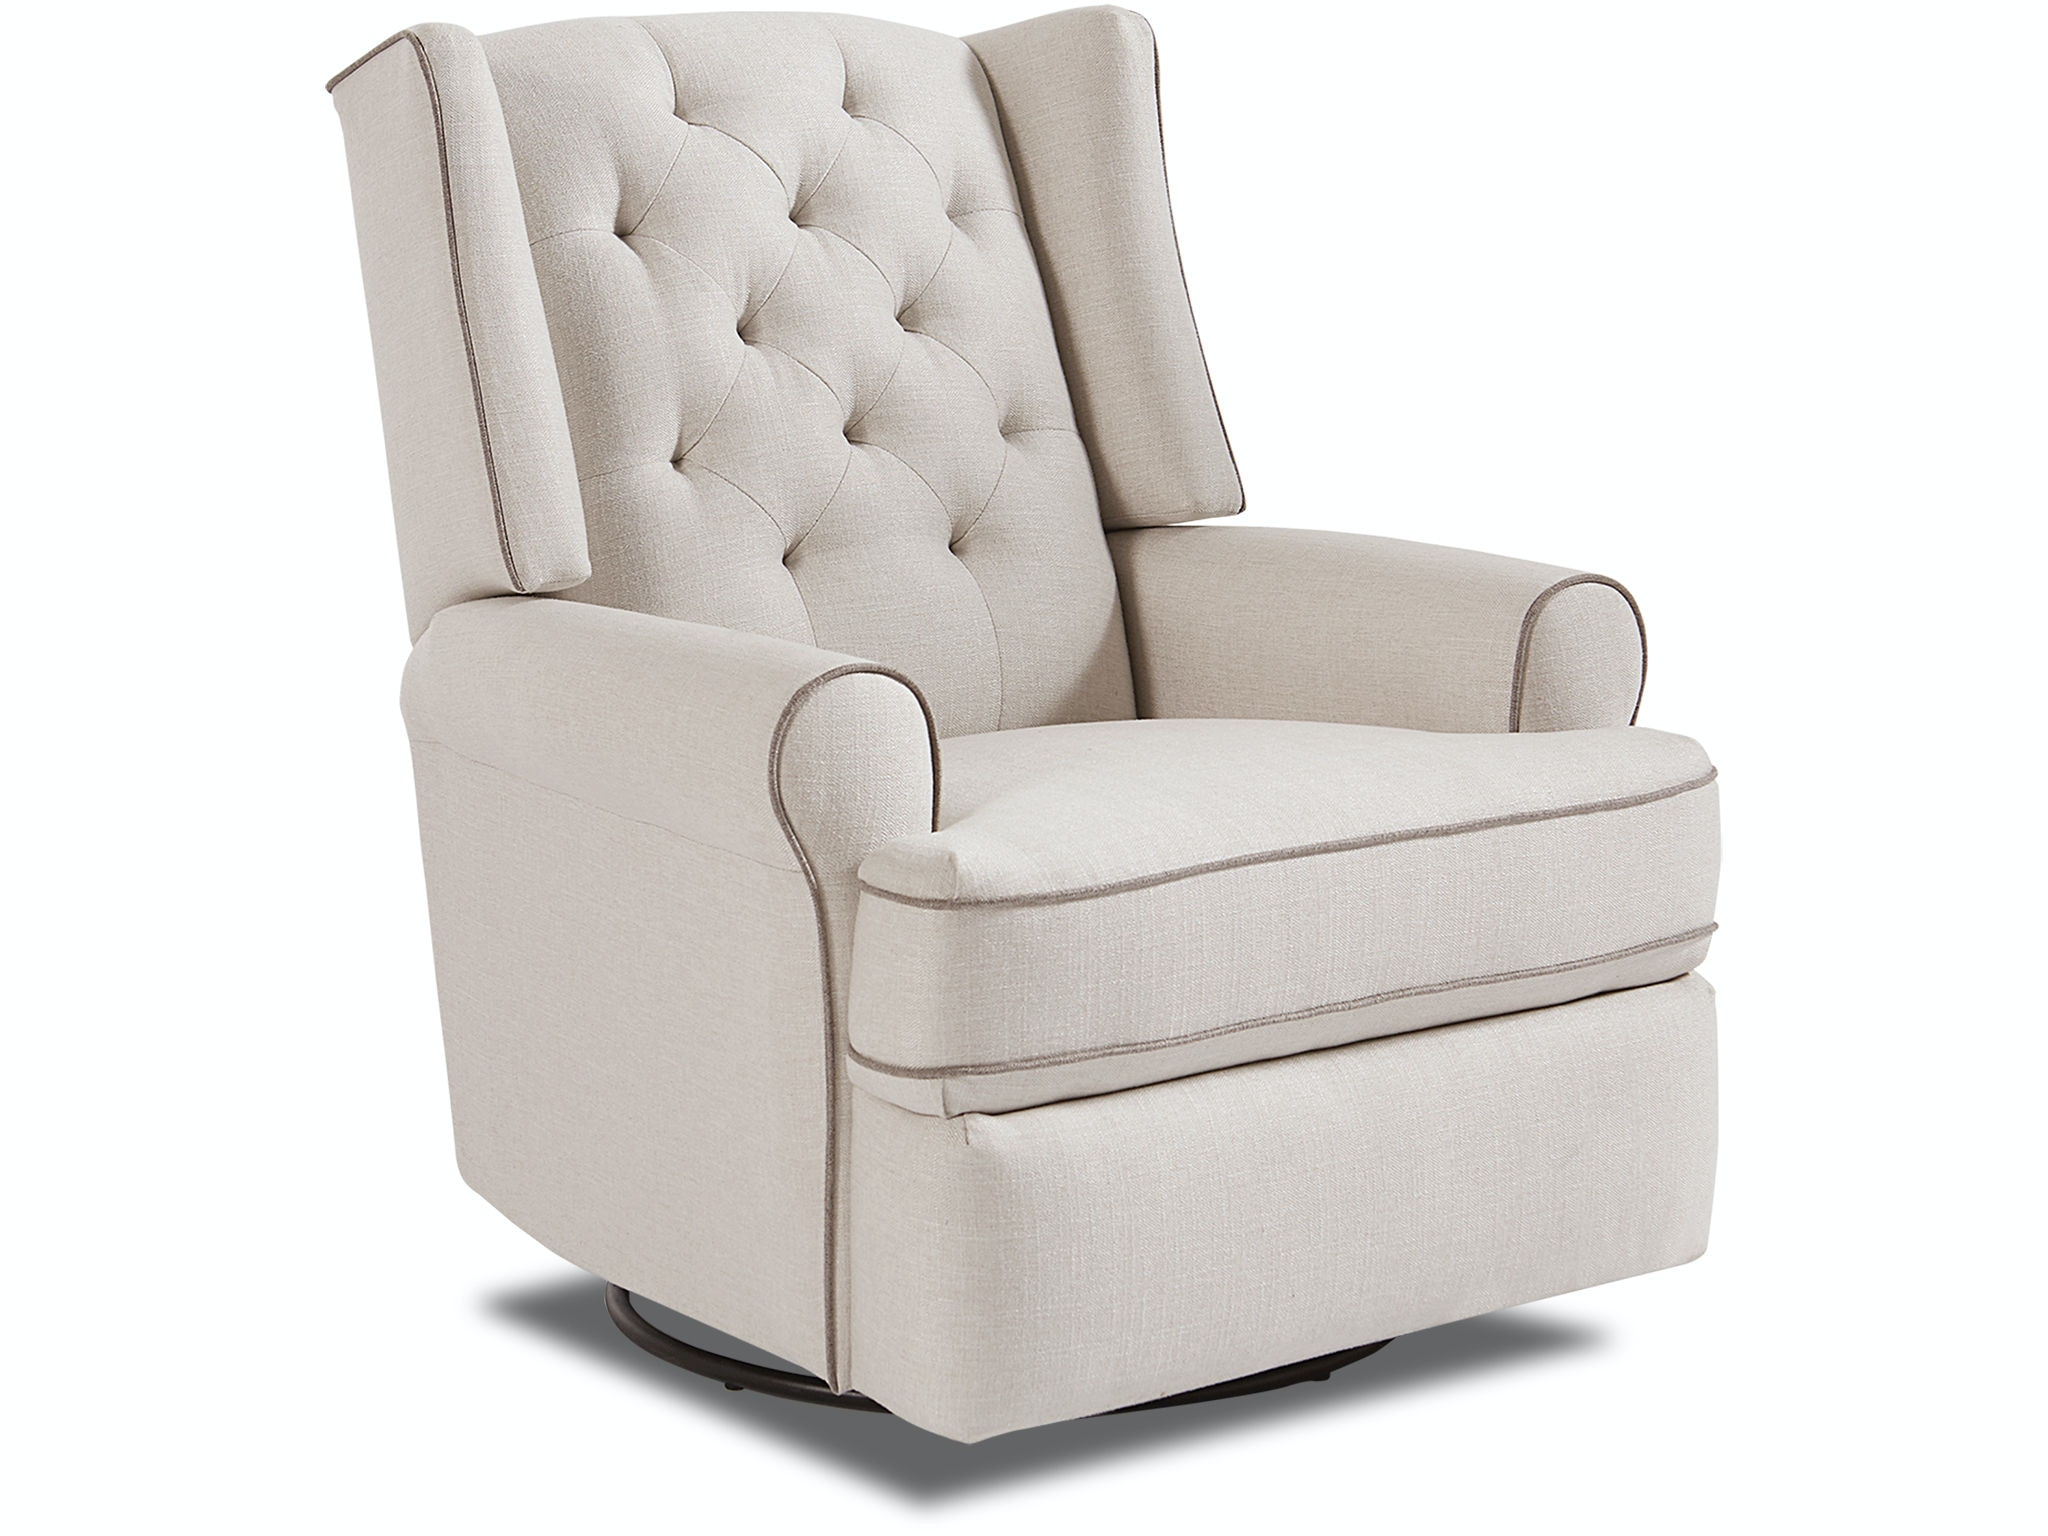 best home furnishings living room chair 5ni85 flemington rh flemingtondepartmentstore com best home furnishing stores in la best home furnishing stores in chicago